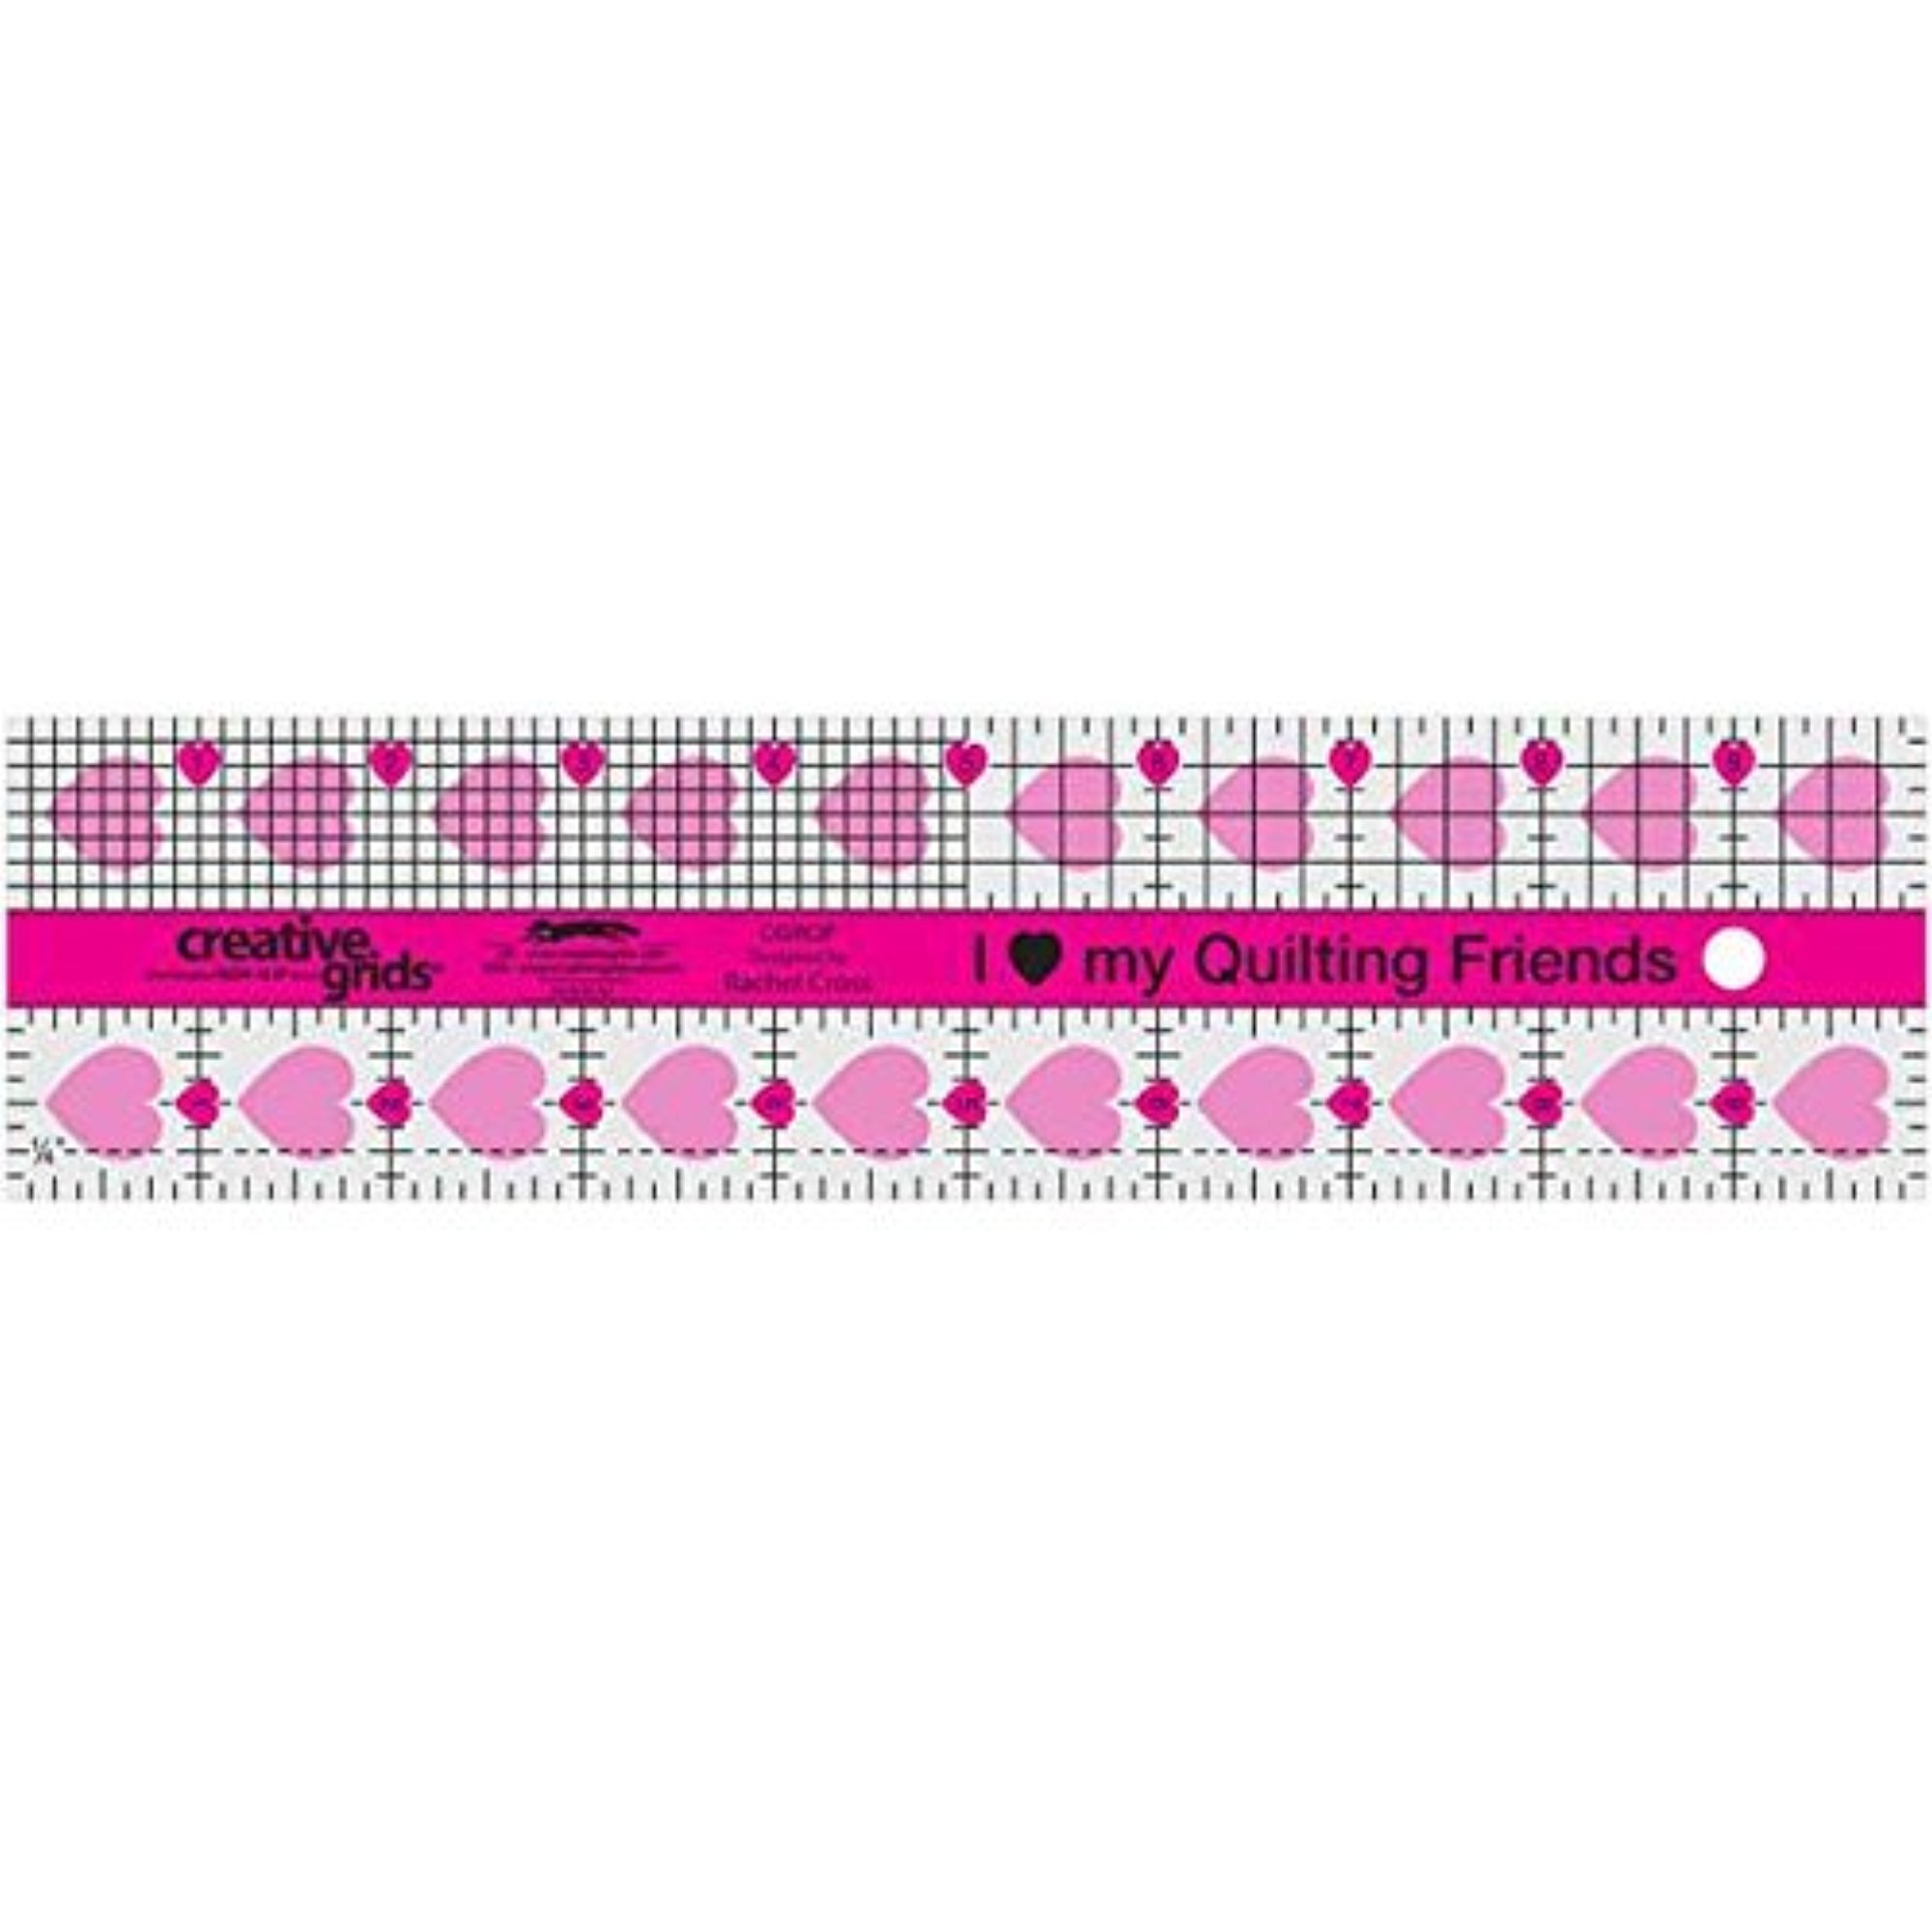 """Creative Grids 2 1/2"""" x 10"""" I Love My Quilting Friends Rectangle Ruler"""